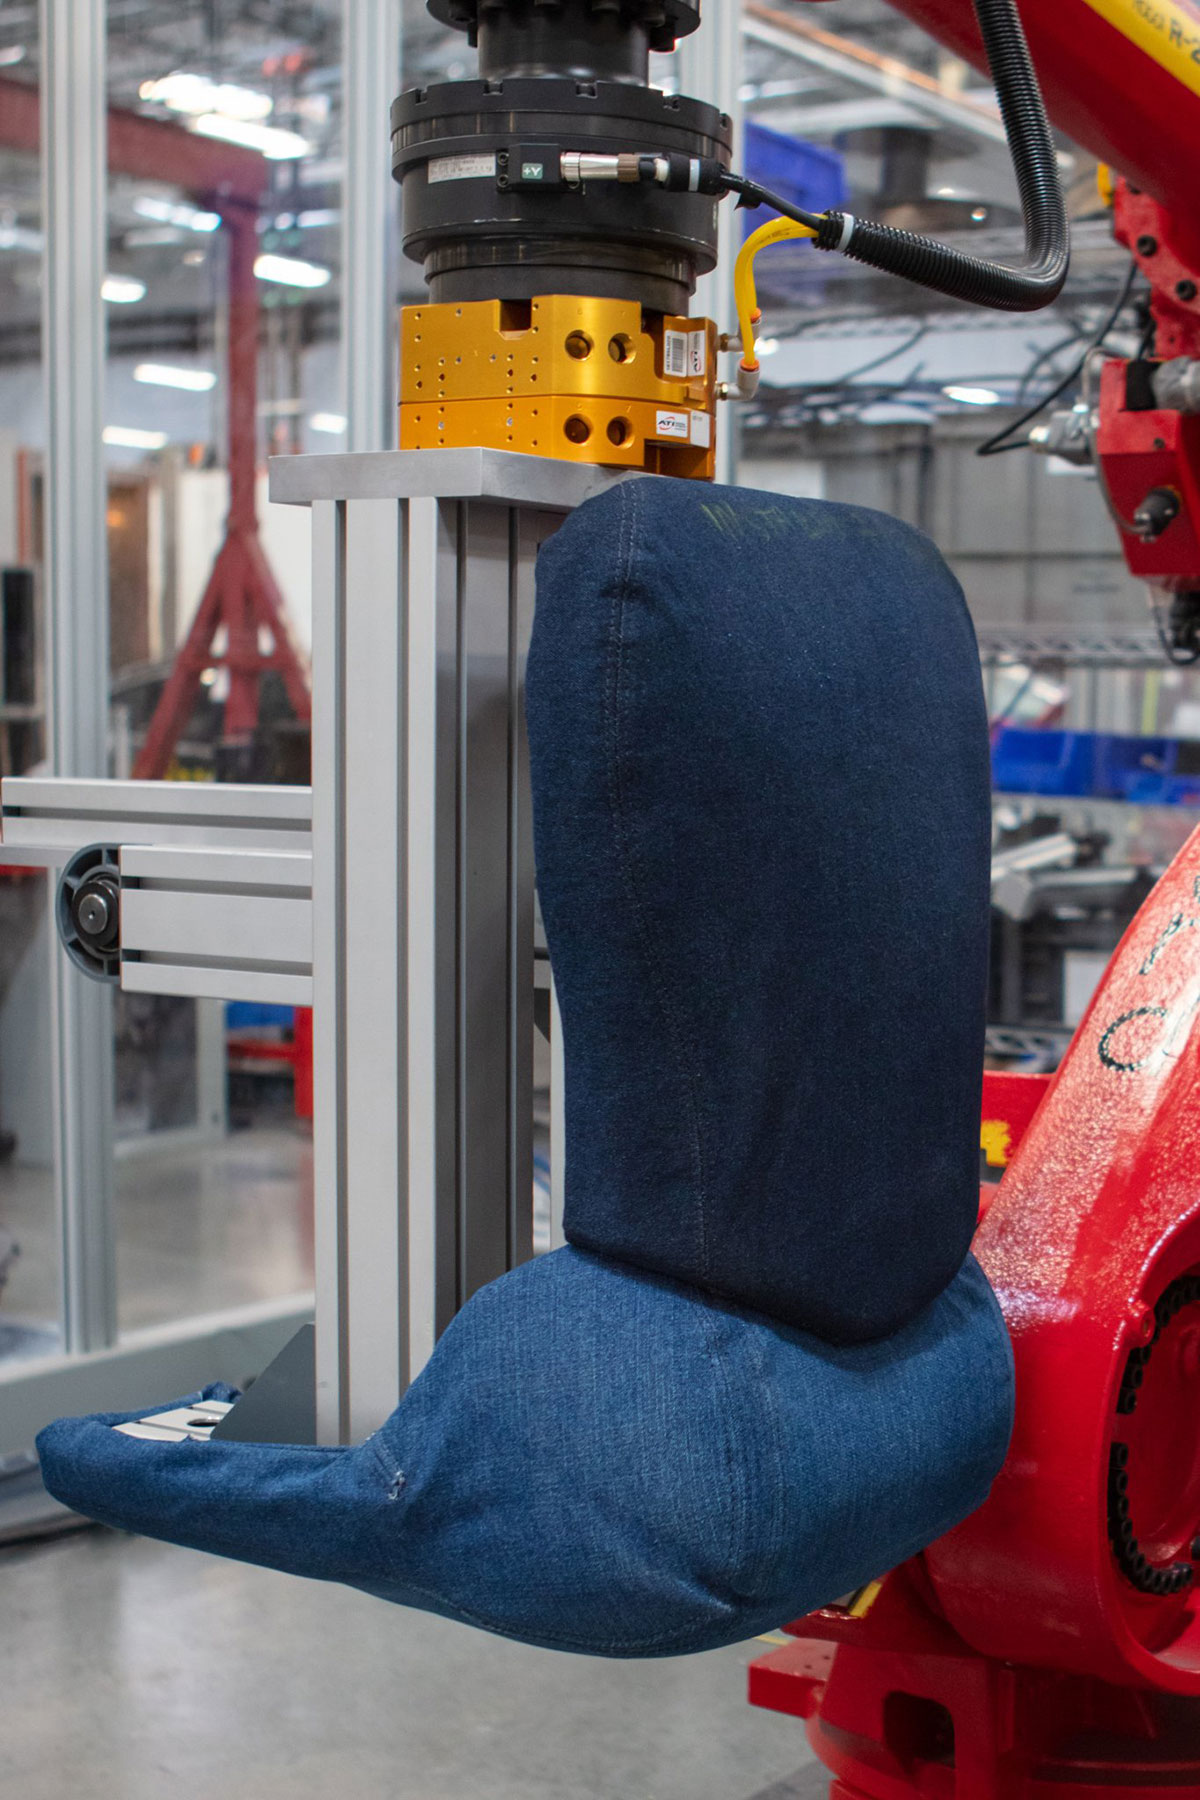 Tesla Model 3 seat tester model wearing blue jeans for stain resistance testing.